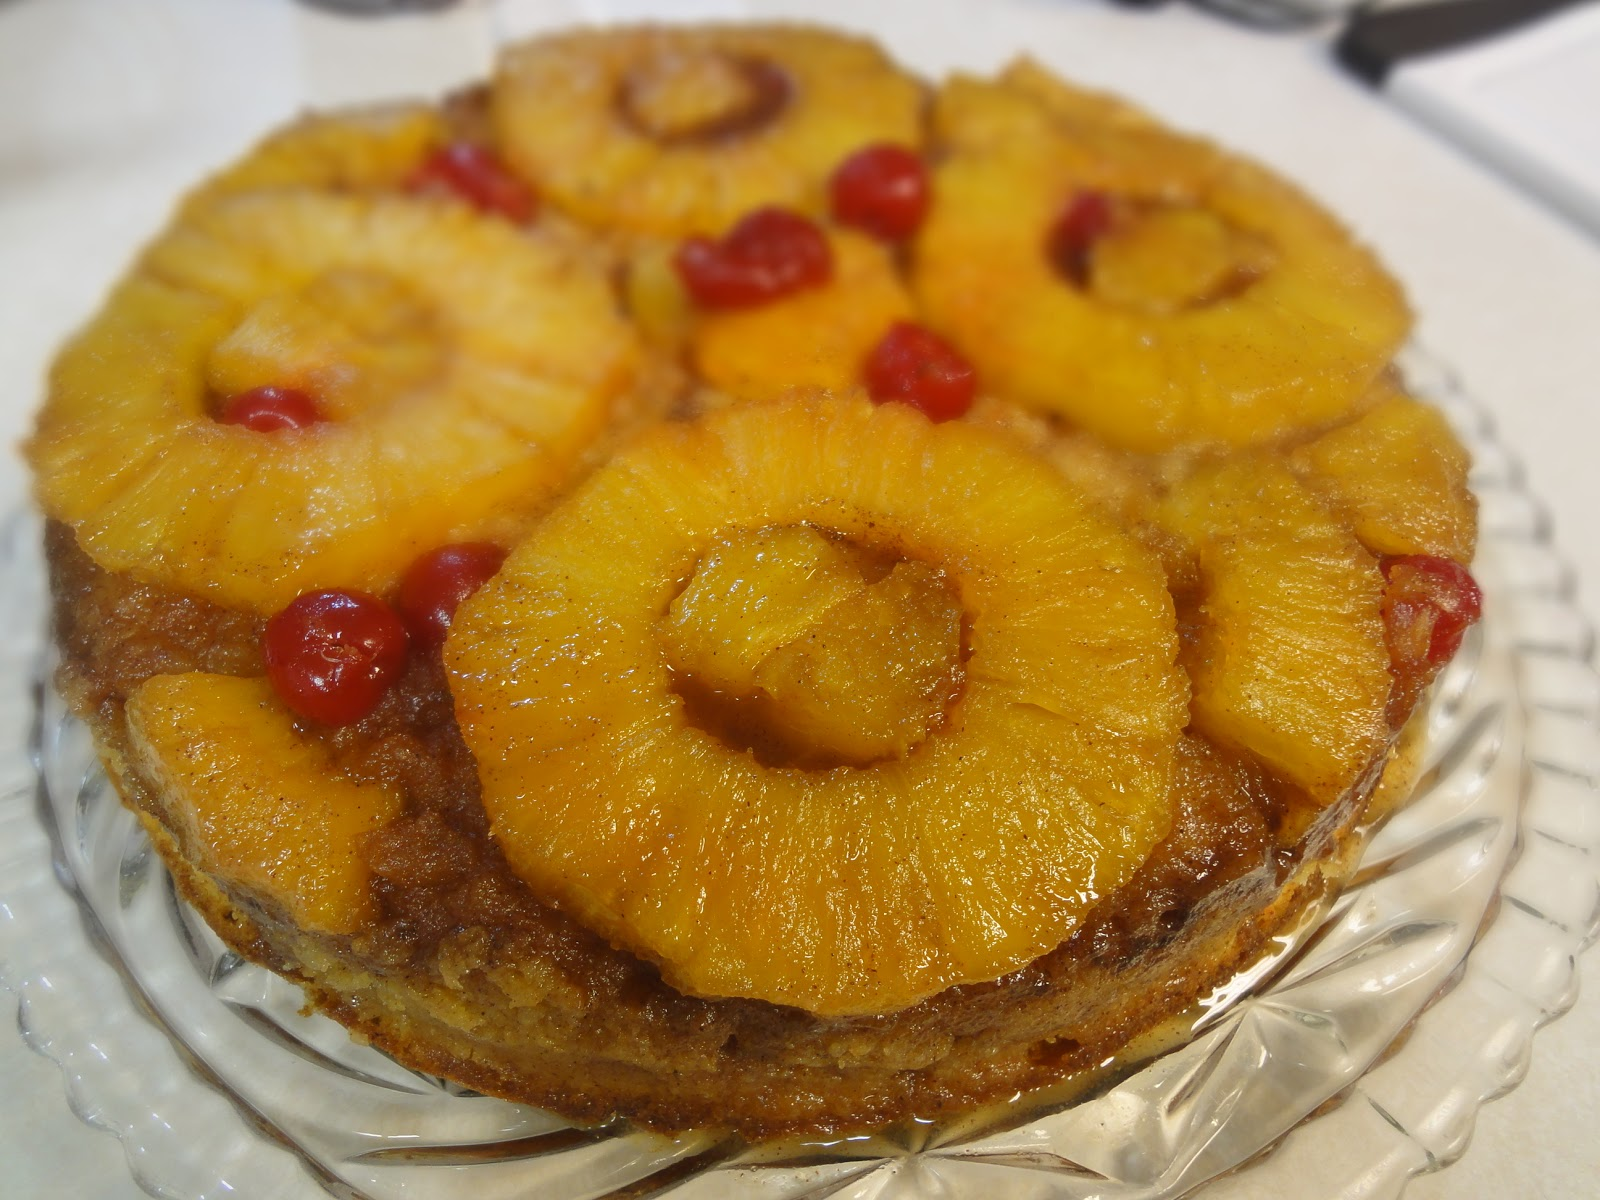 Blog as you Bake: Pineapple Upside Down Cake